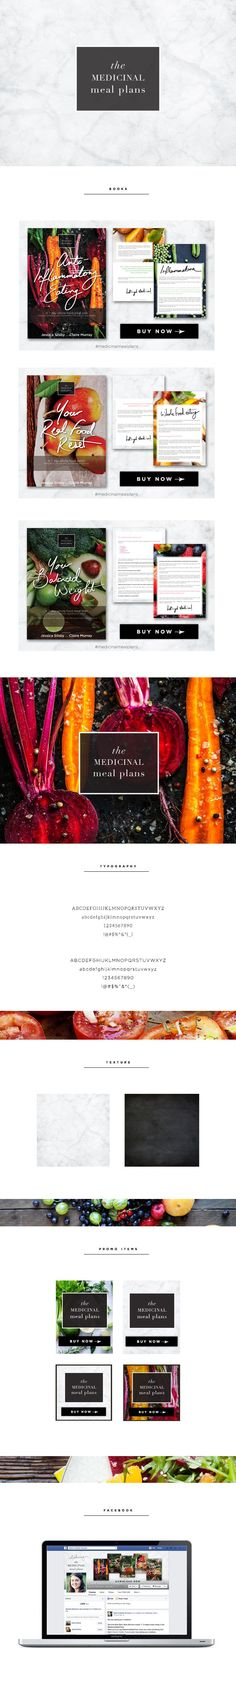 The Medicinal Meal Plans : branding and ebook design by Vari Longmuir at Buttercup Ink. Like my style? Click for more info >> http://www.buttercupink.com/wp-content/uploads/2014/11/LuxeBranding_TheDetails_Nov14.pdf #handlettering #graphicdesign #ebook: